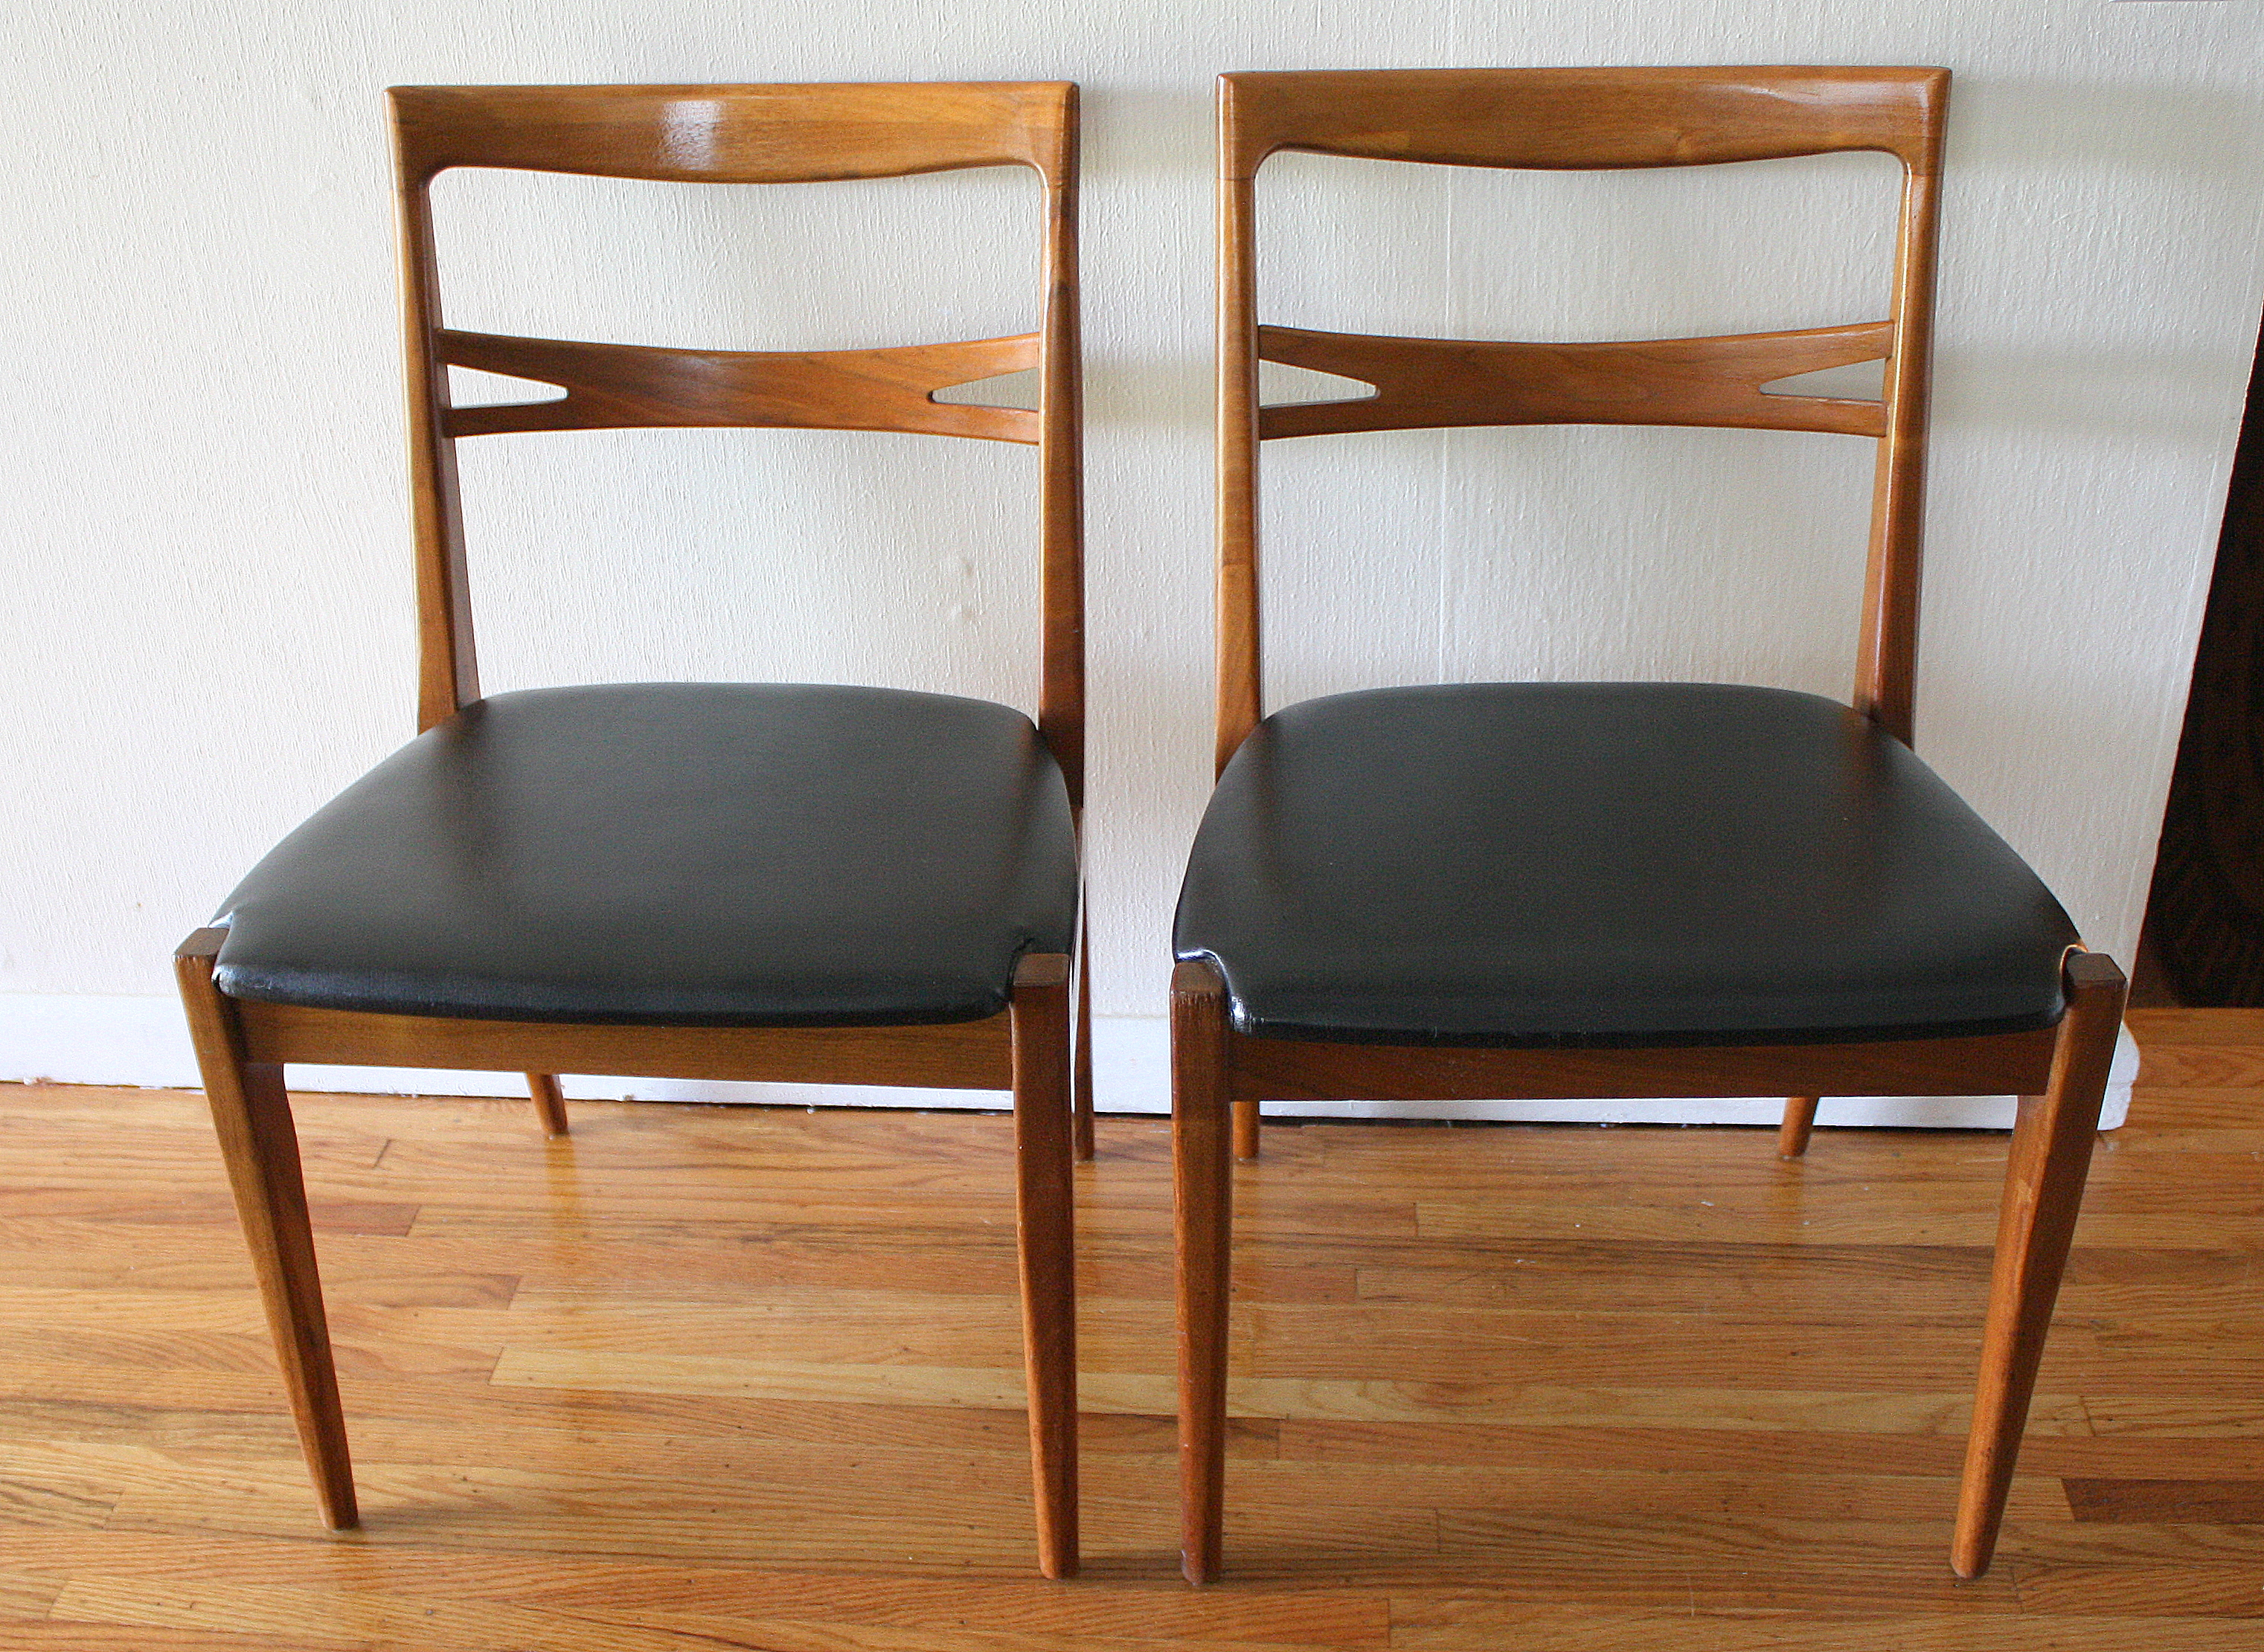 Mcm Chair Mcm Danish Chair With Cross Back 2 Picked Vintage